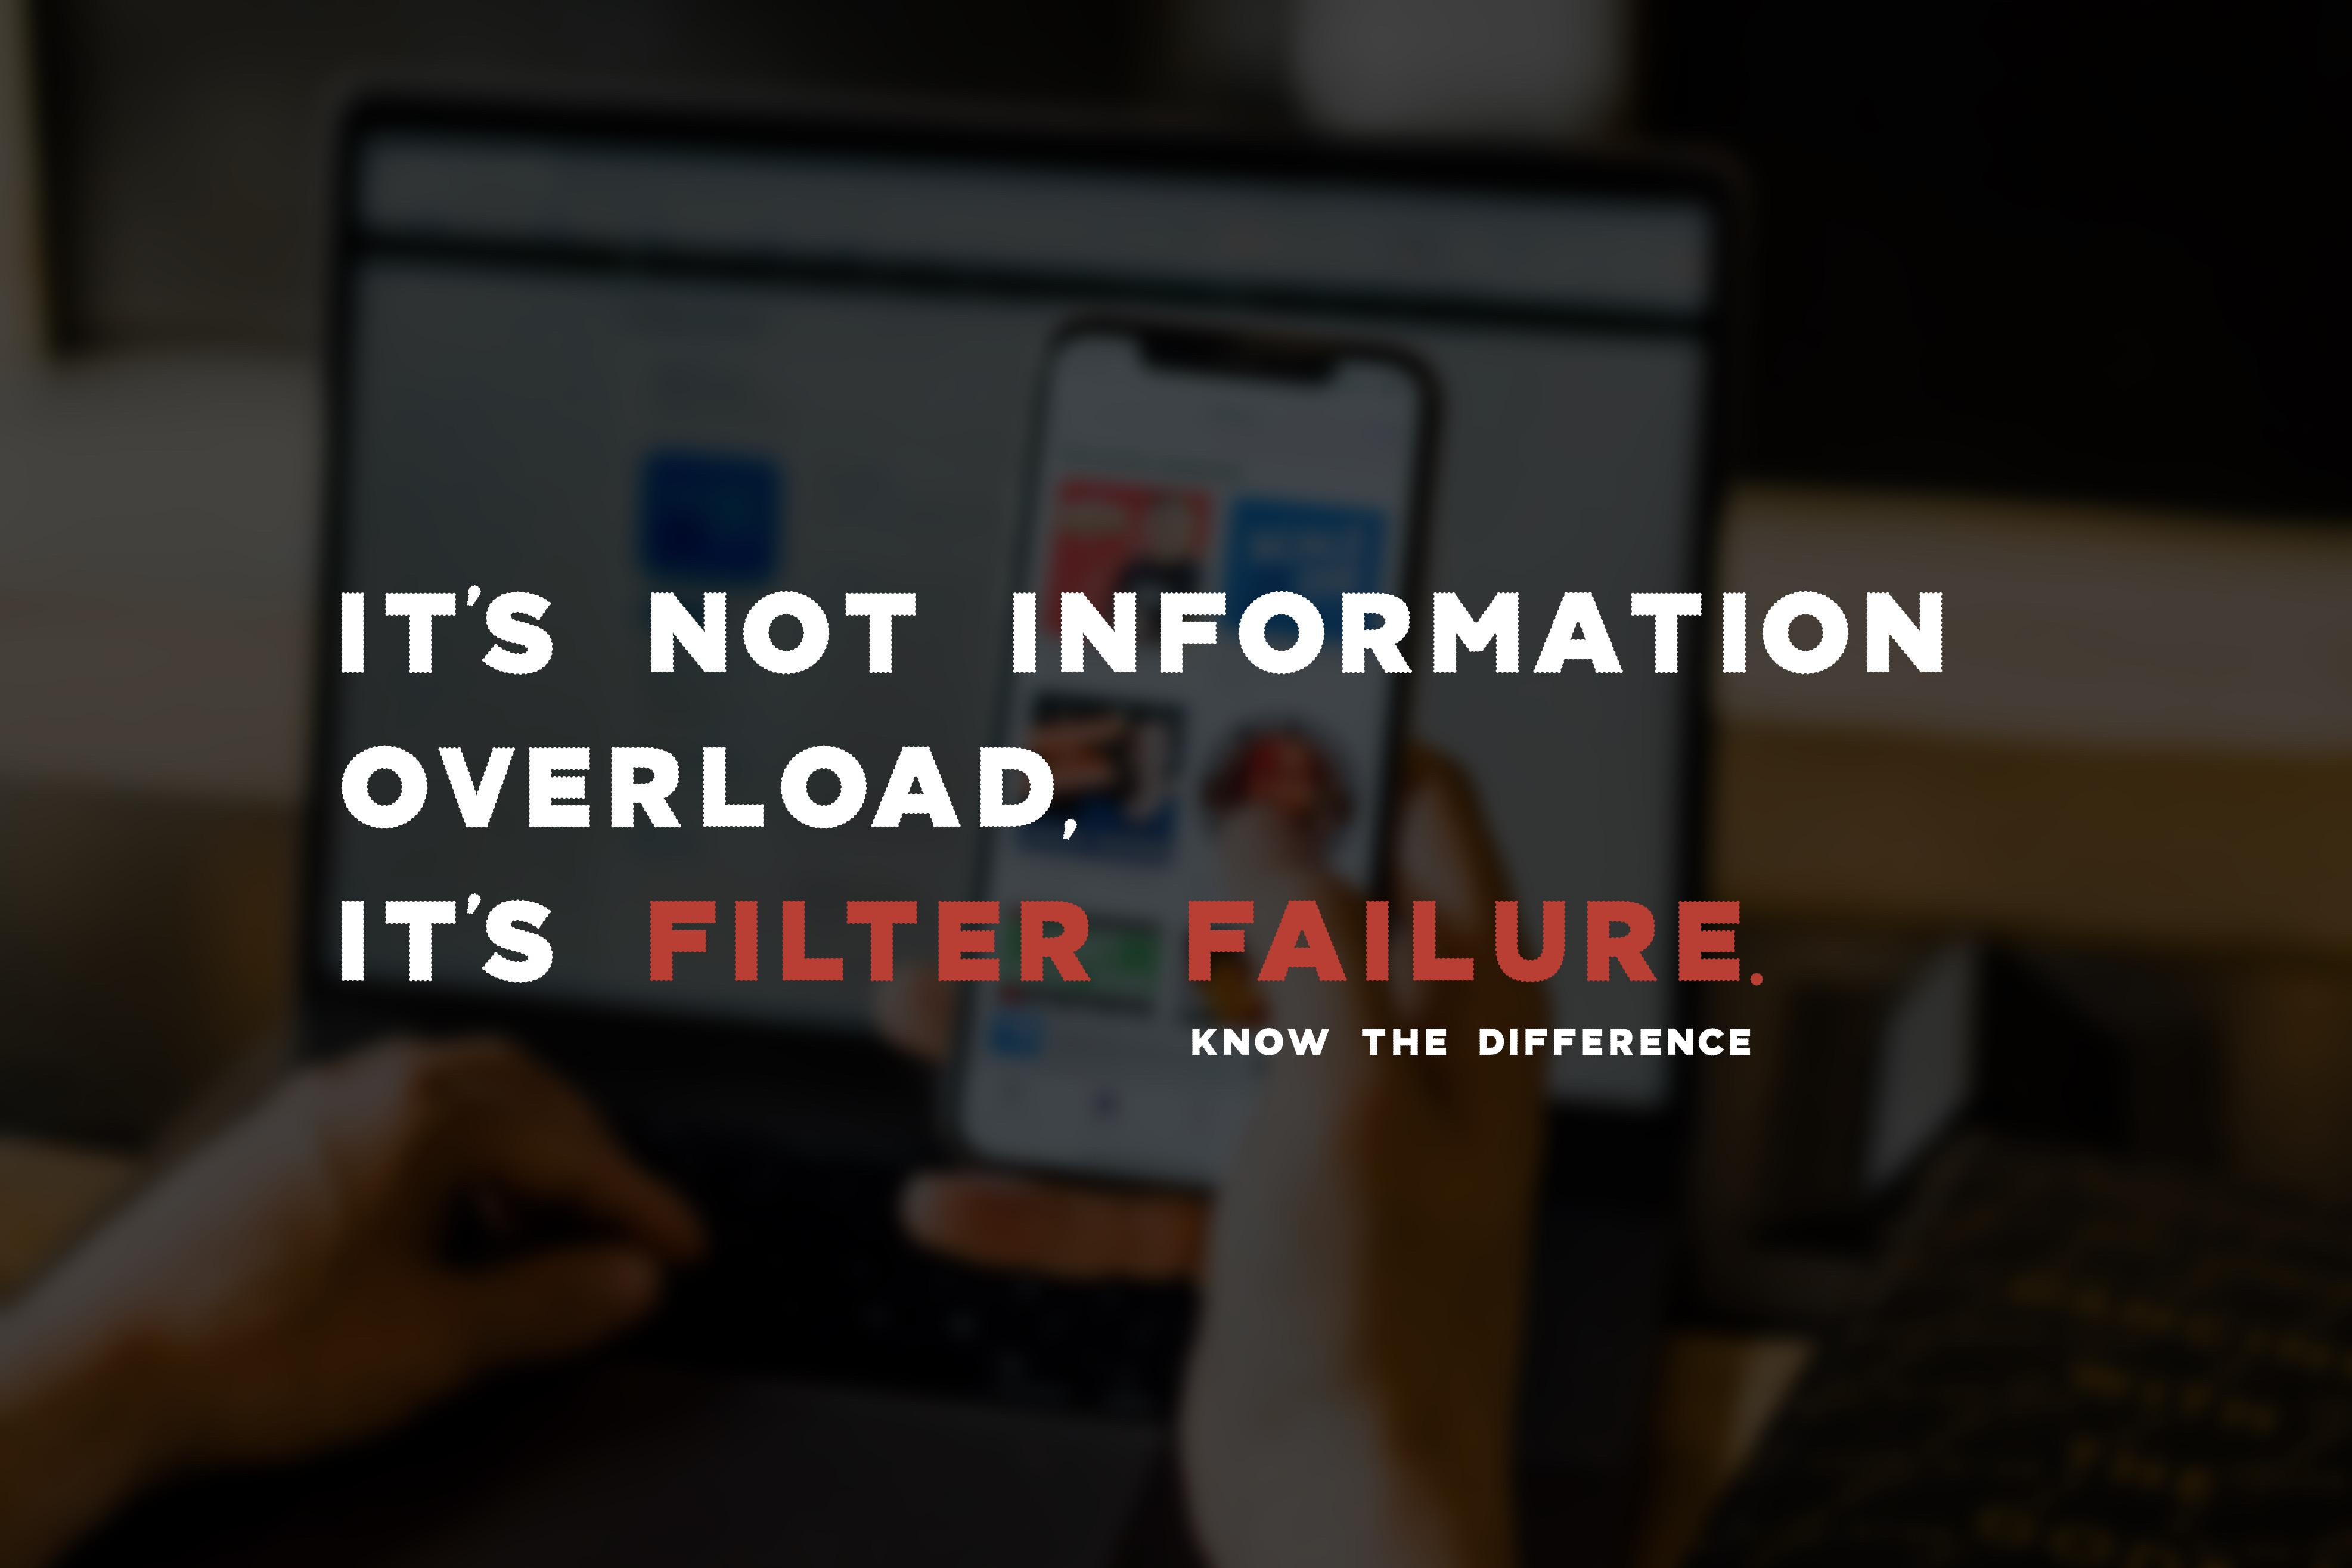 Information should be filtered, especially nowadays [3956* 2631]